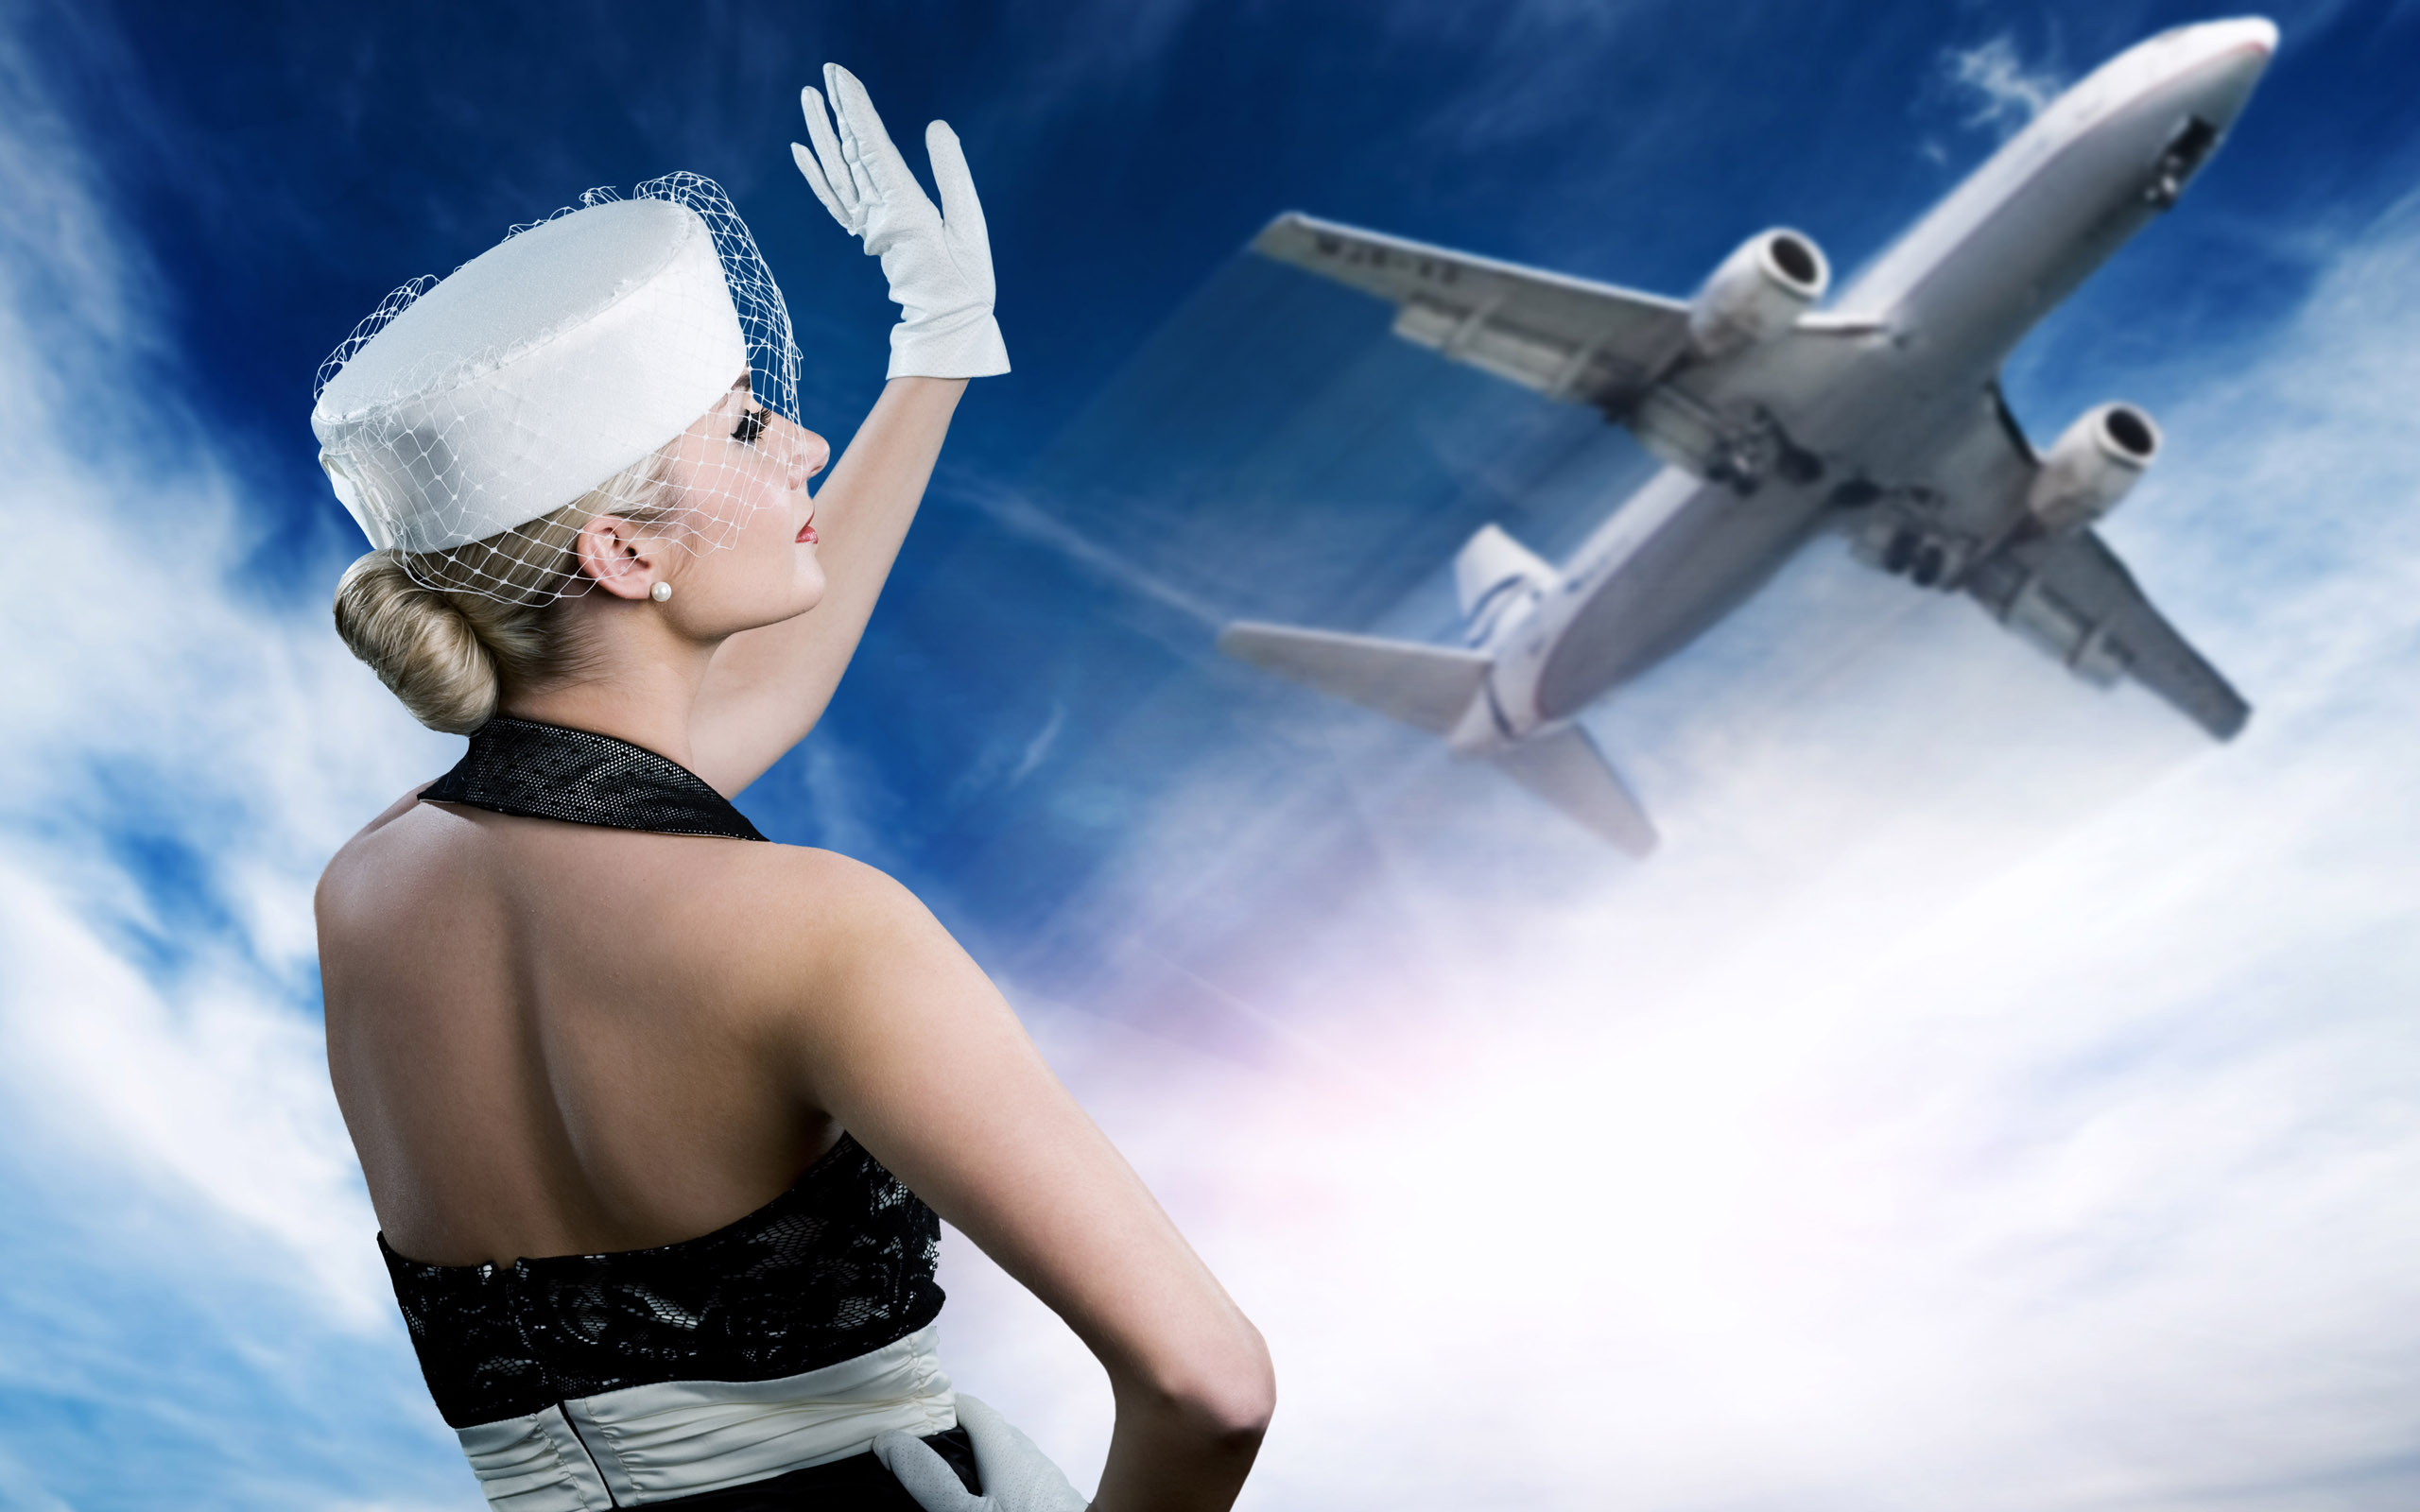 Boxing Wallpapers Hd Iphone Download Air Hostess Hd Wallpaper Gallery